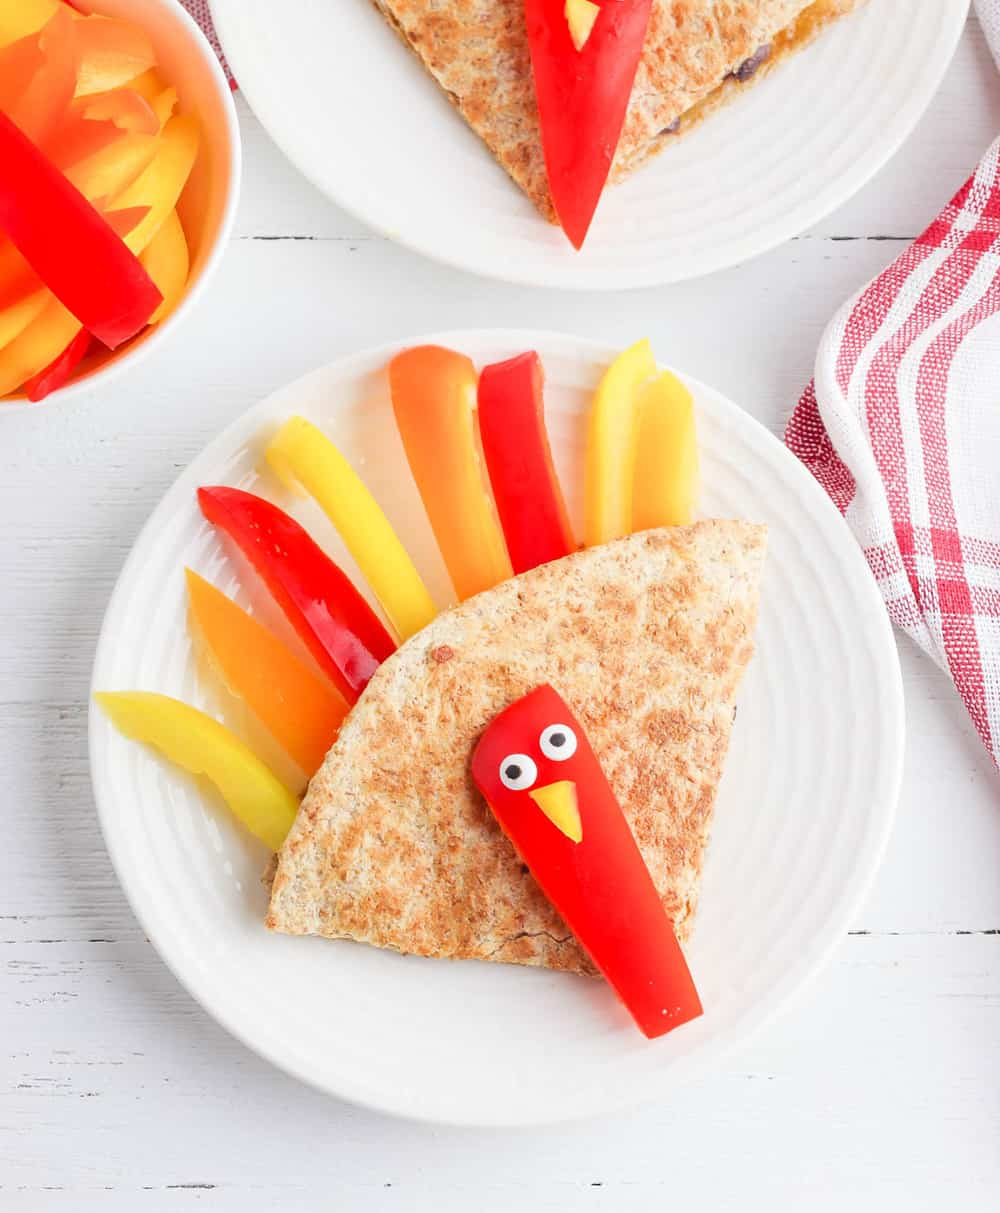 cheese quesadilla shaped like turkeys, with bell peppers, beans and cheese